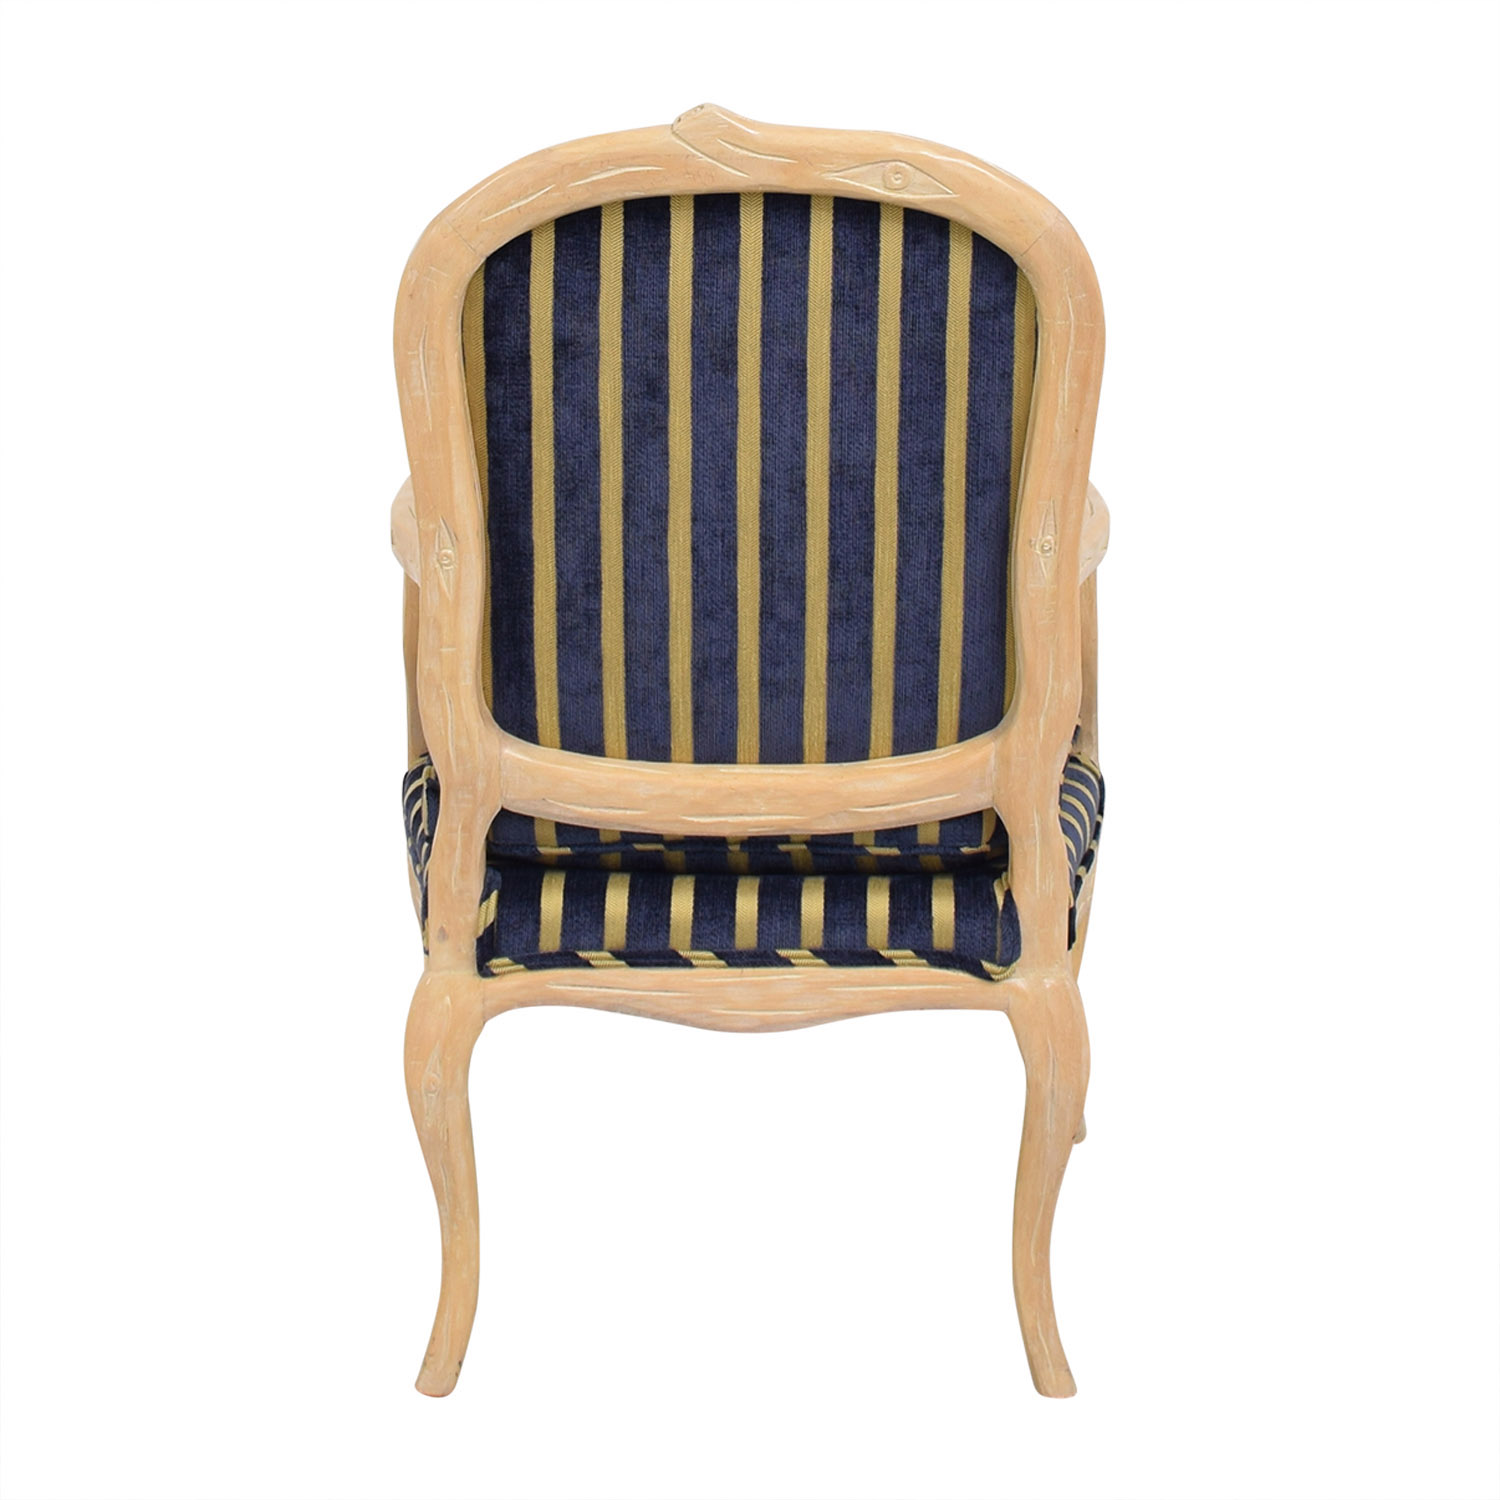 Stripe Upholstered Arm Chair second hand